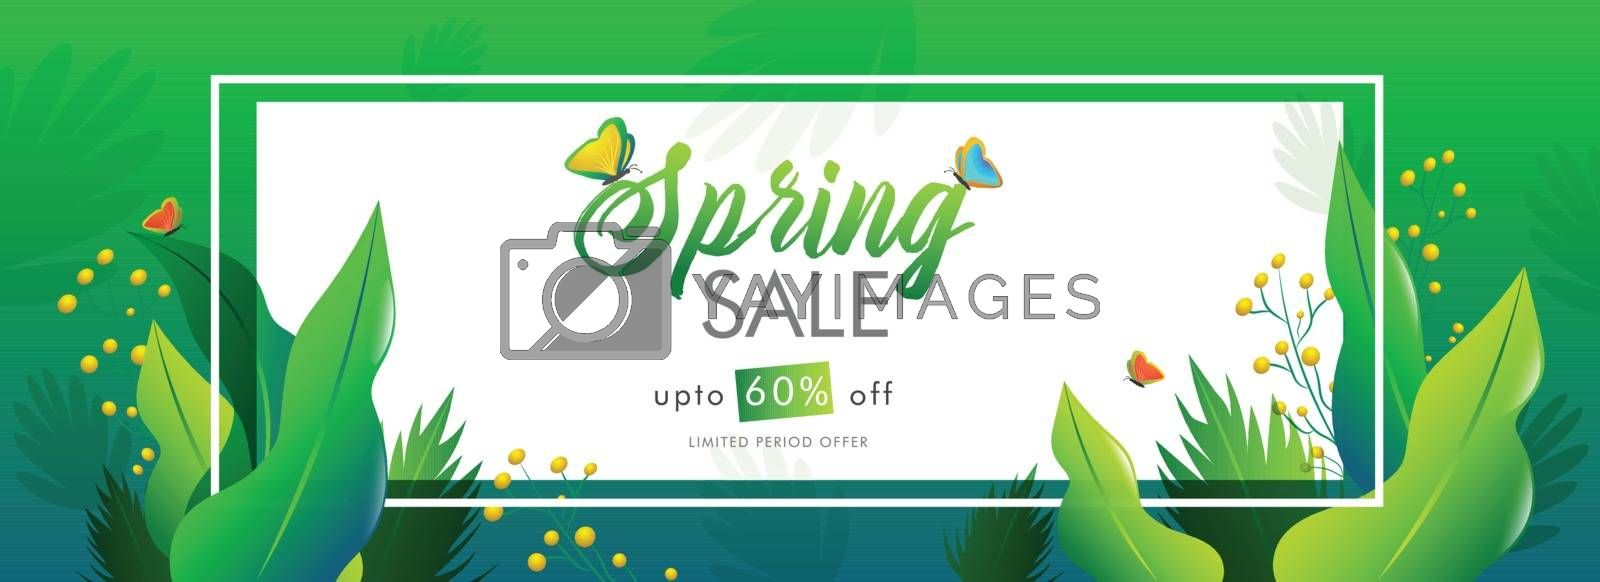 Royalty free image of Spring sale header or banner design with 60% discount offer and  by aispl